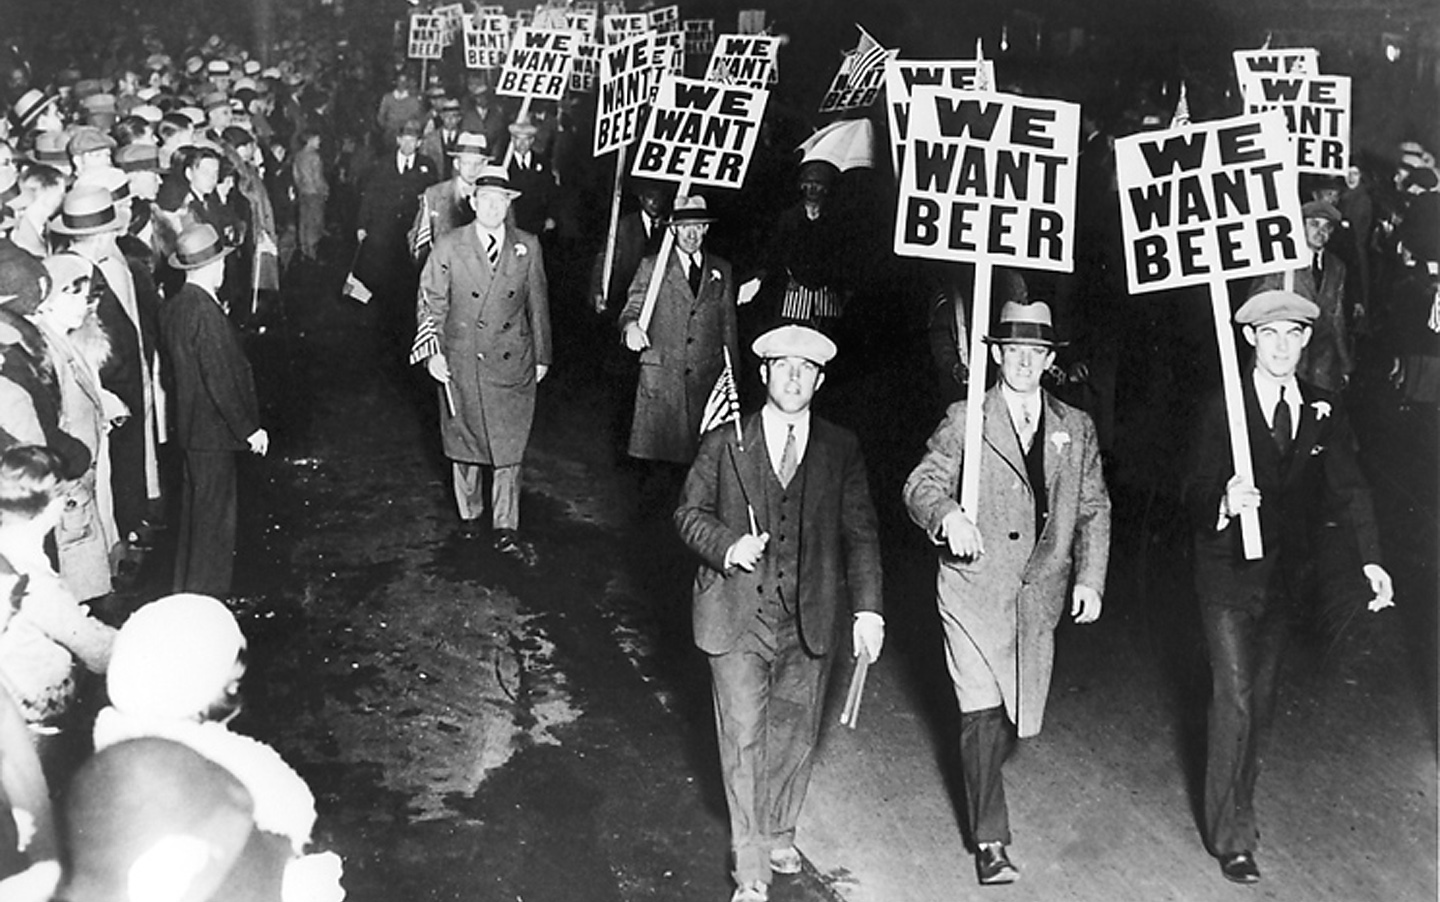 effects of 21st amendment Effects of prohibition weren't what temperance activists promised the negative effects of prohibition were very serious and plague us today.